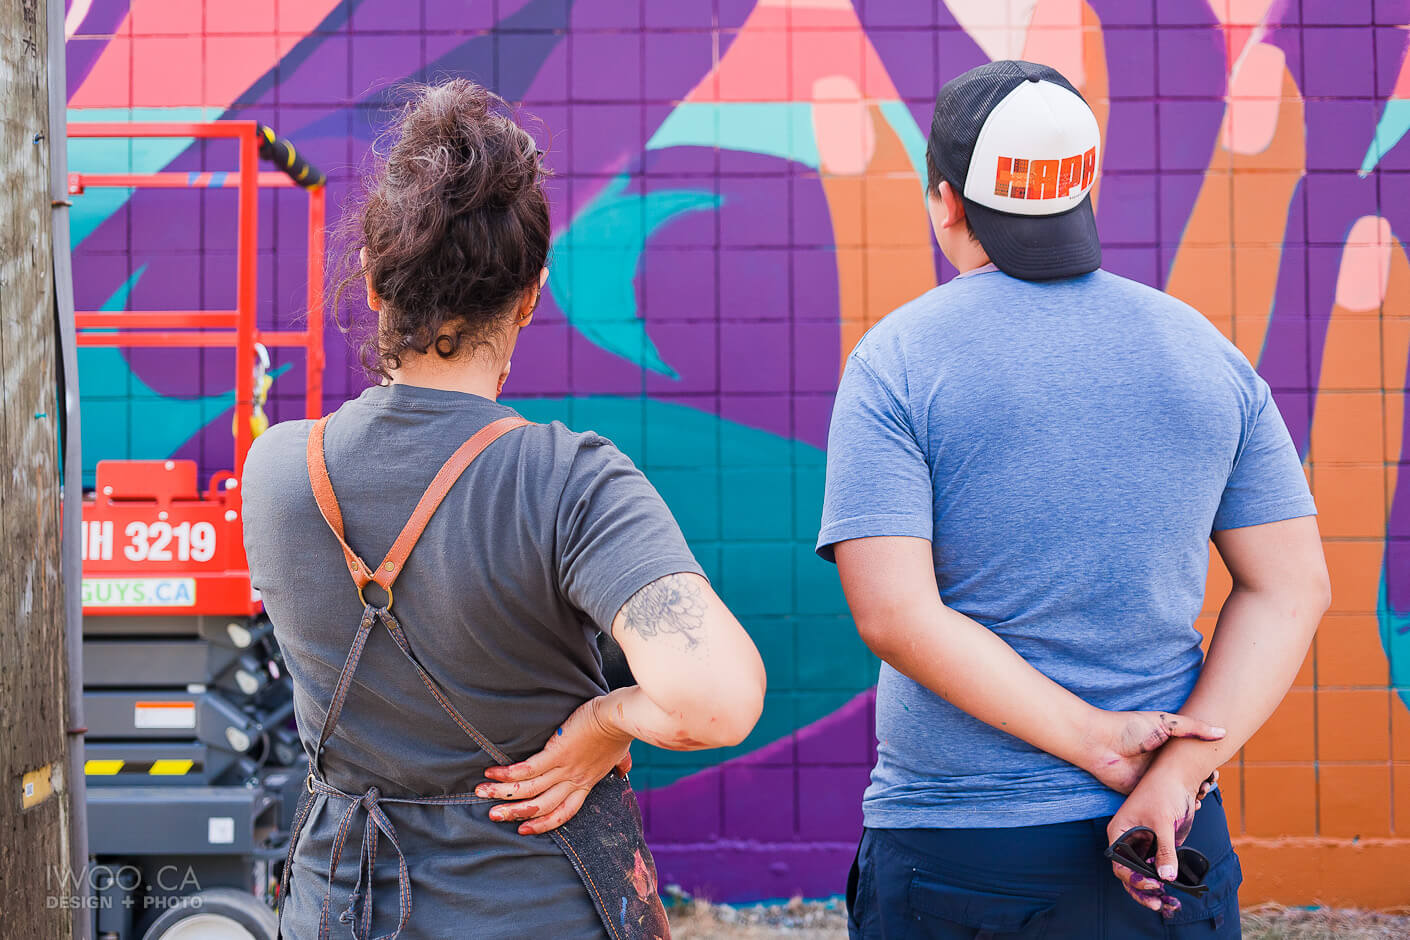 Arbutus Mural: Lauren Brevner + James Harry